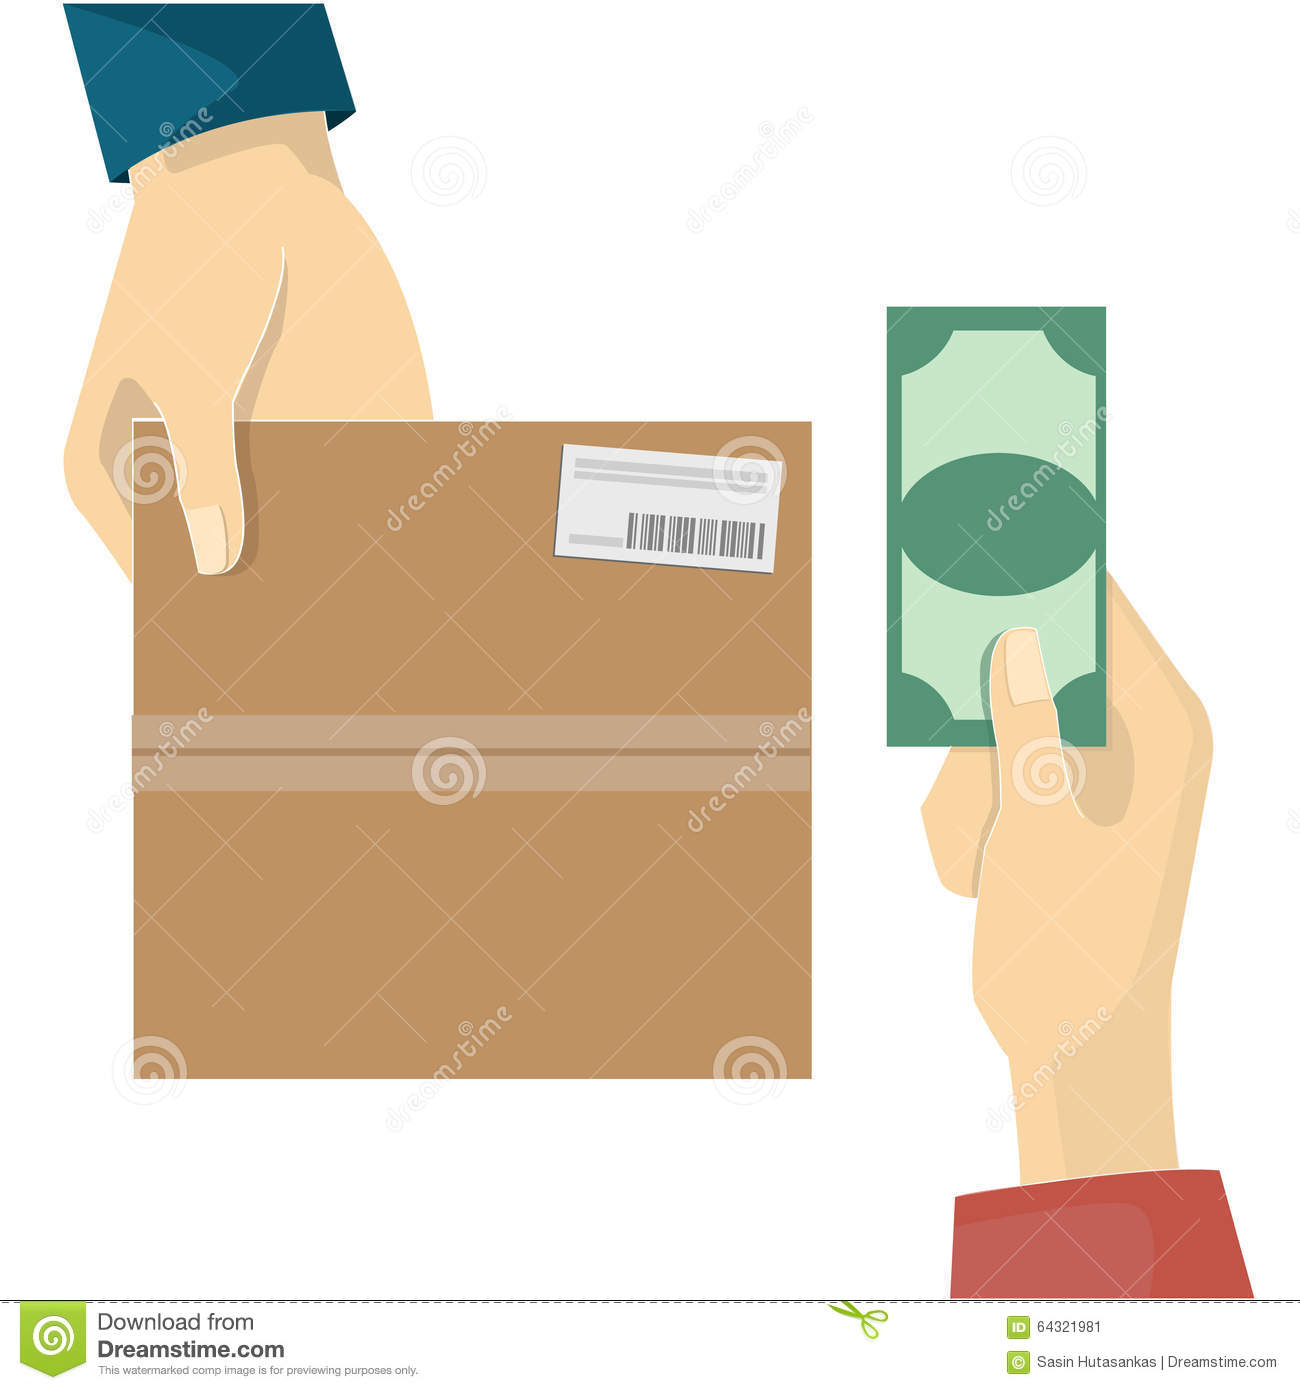 17c2d713f94 Cash on delivery service stock vector. Illustration of service ...